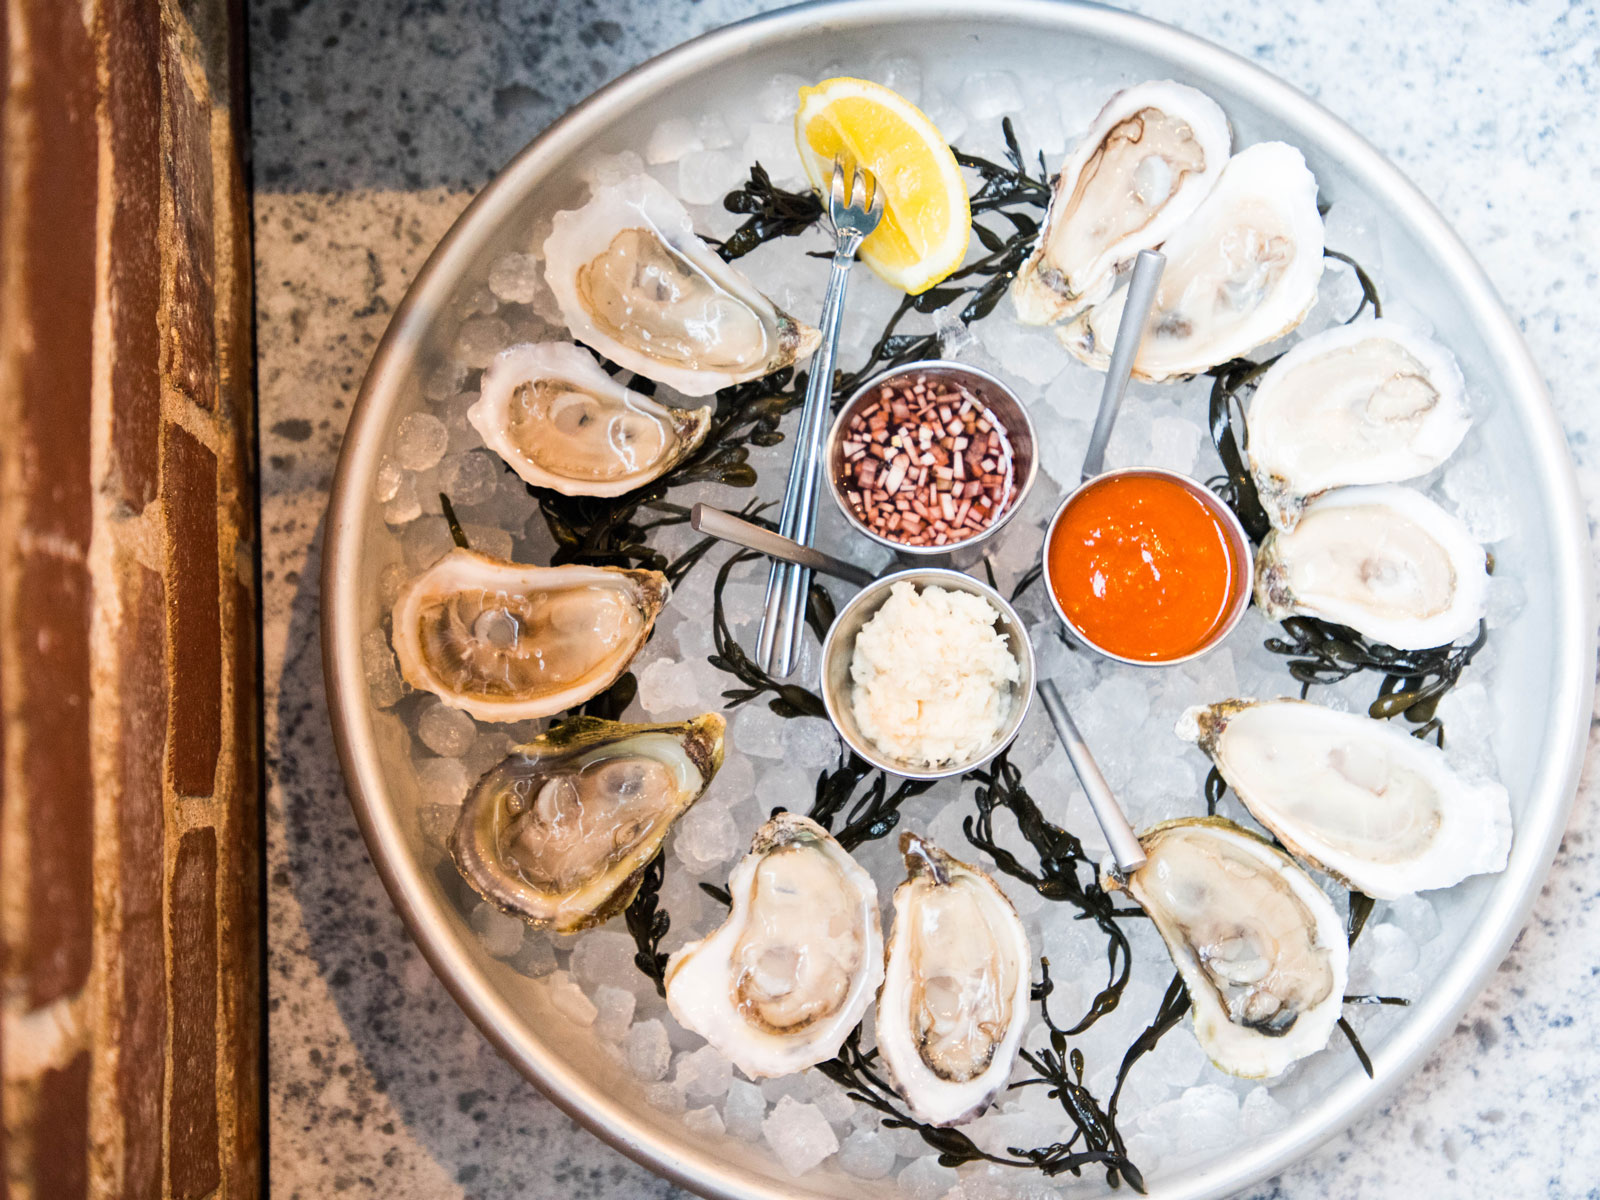 Oysters at The Gray Canary